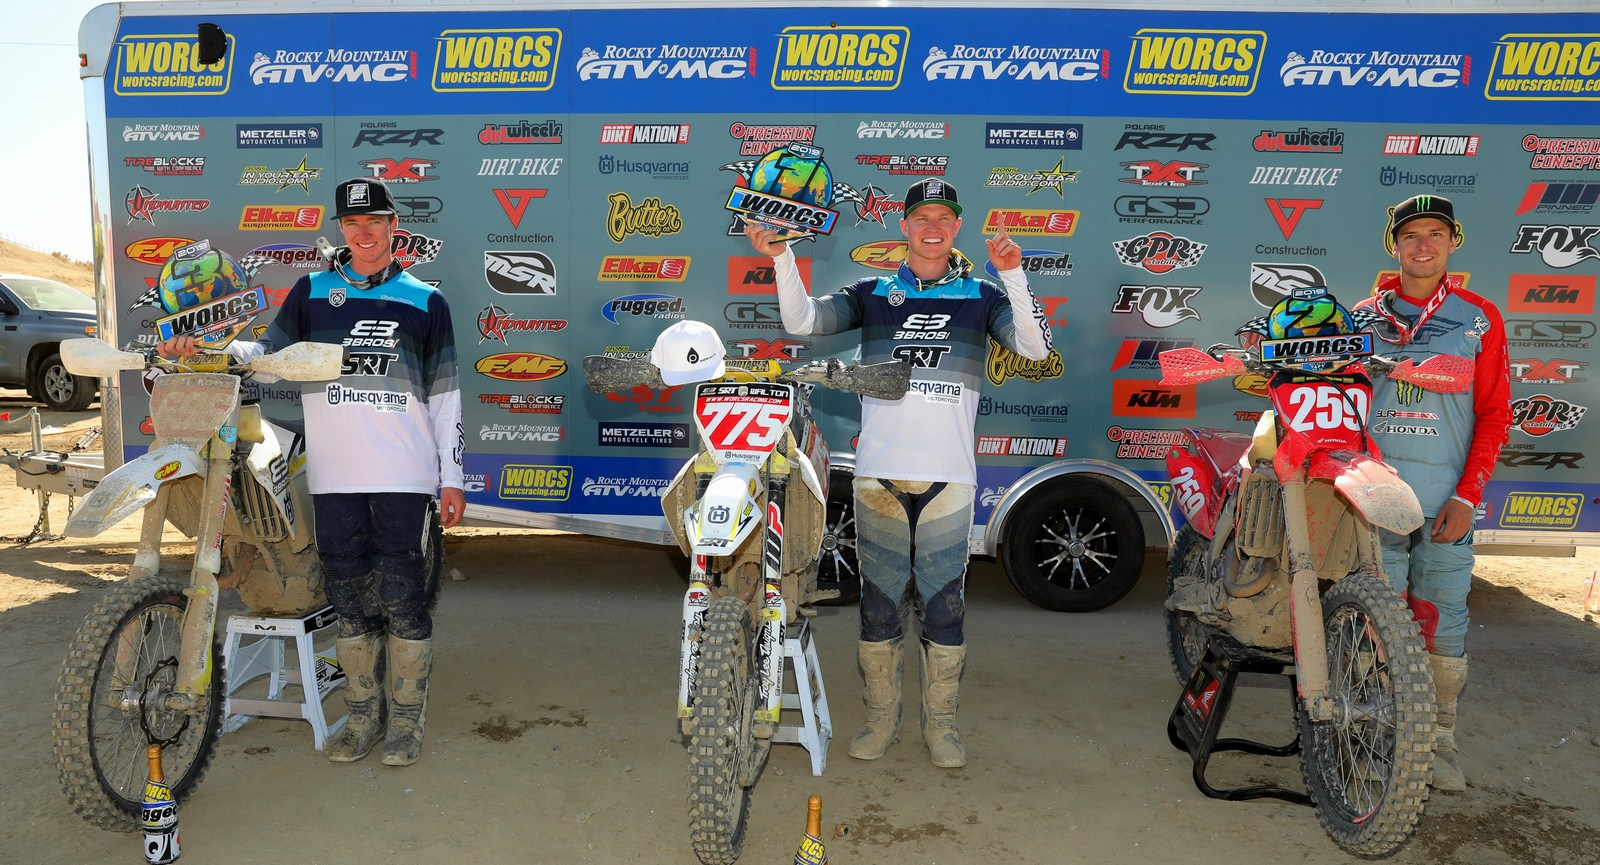 2019-10-podium-pro2-bike-worcs-racing